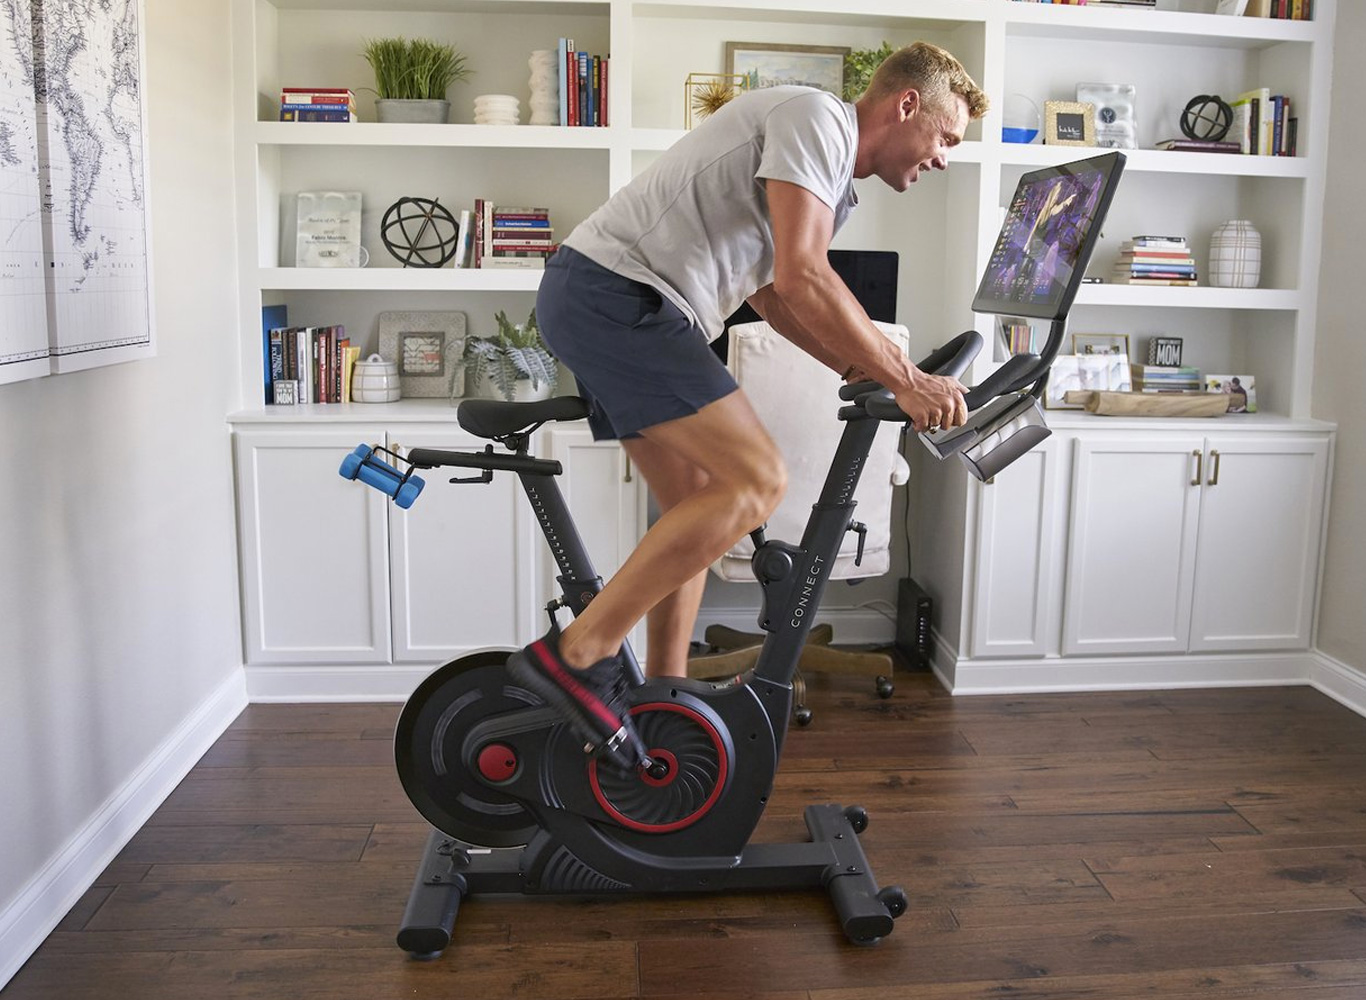 Save 25% on Echelon Indoor Cycles